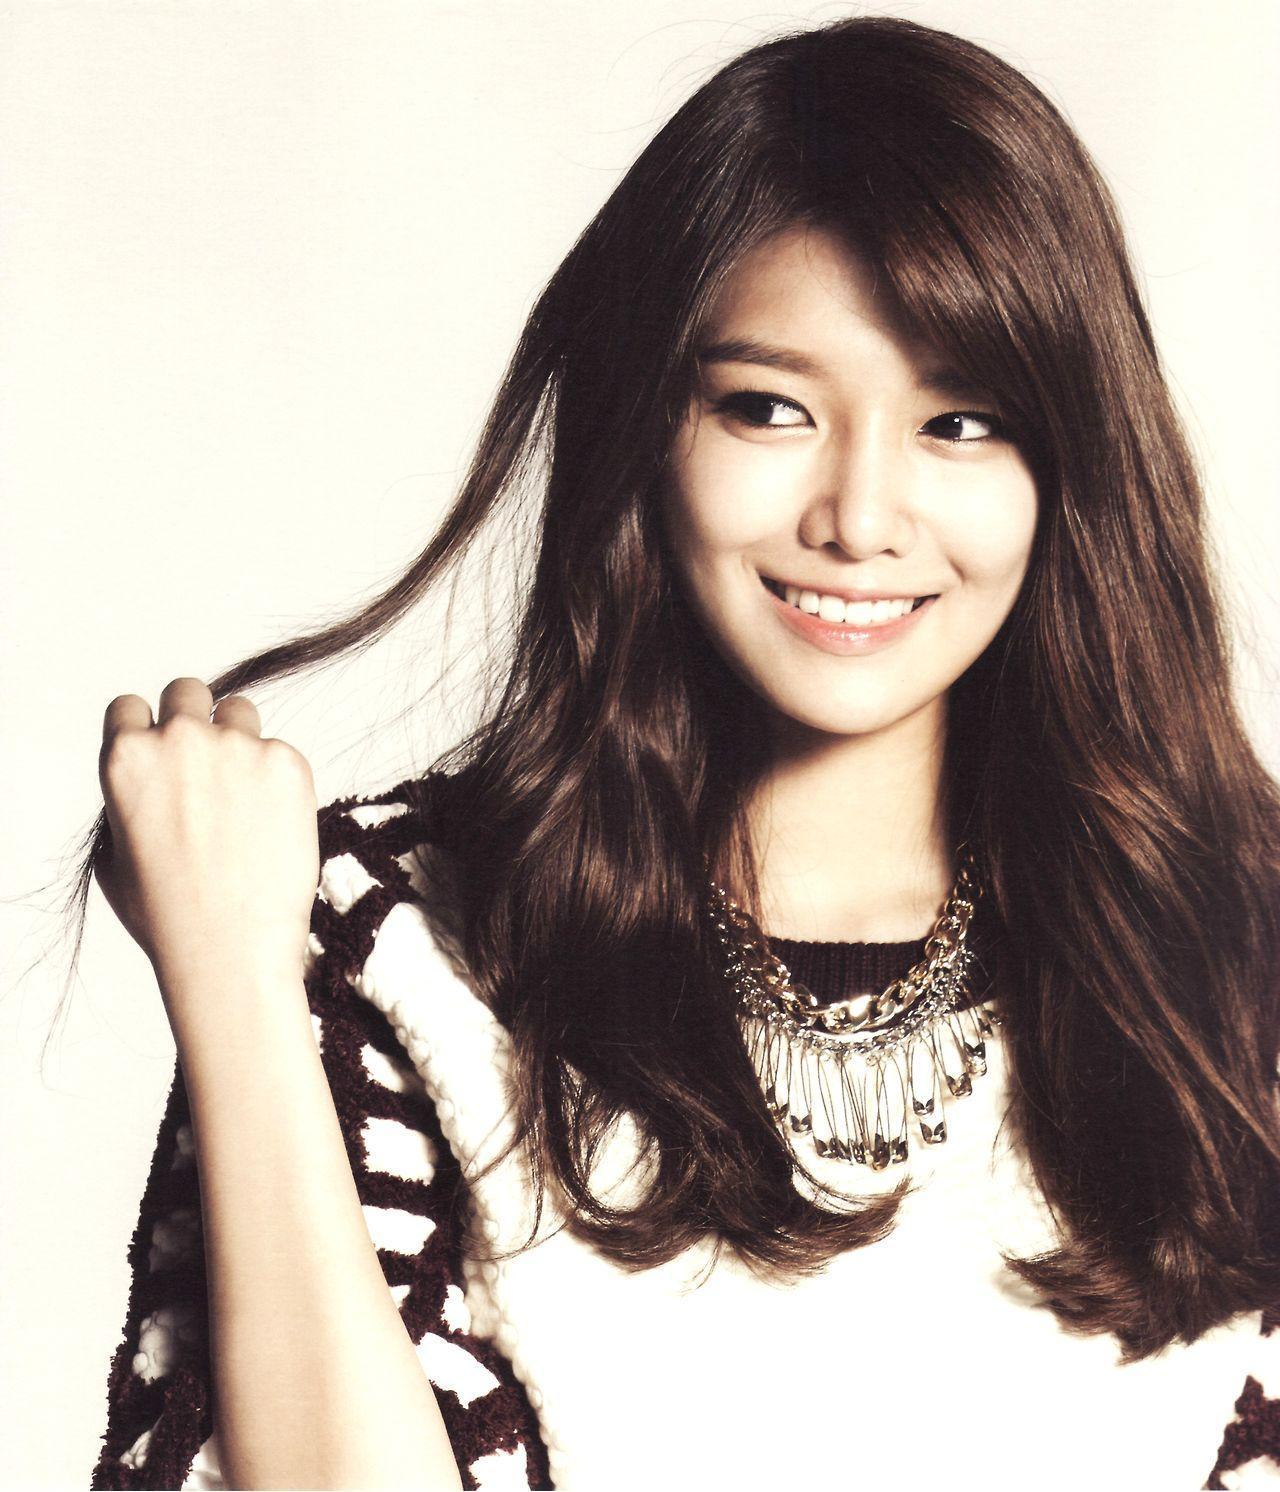 Choi Sooyoung images Choi Sooyoung HD wallpaper and background ...